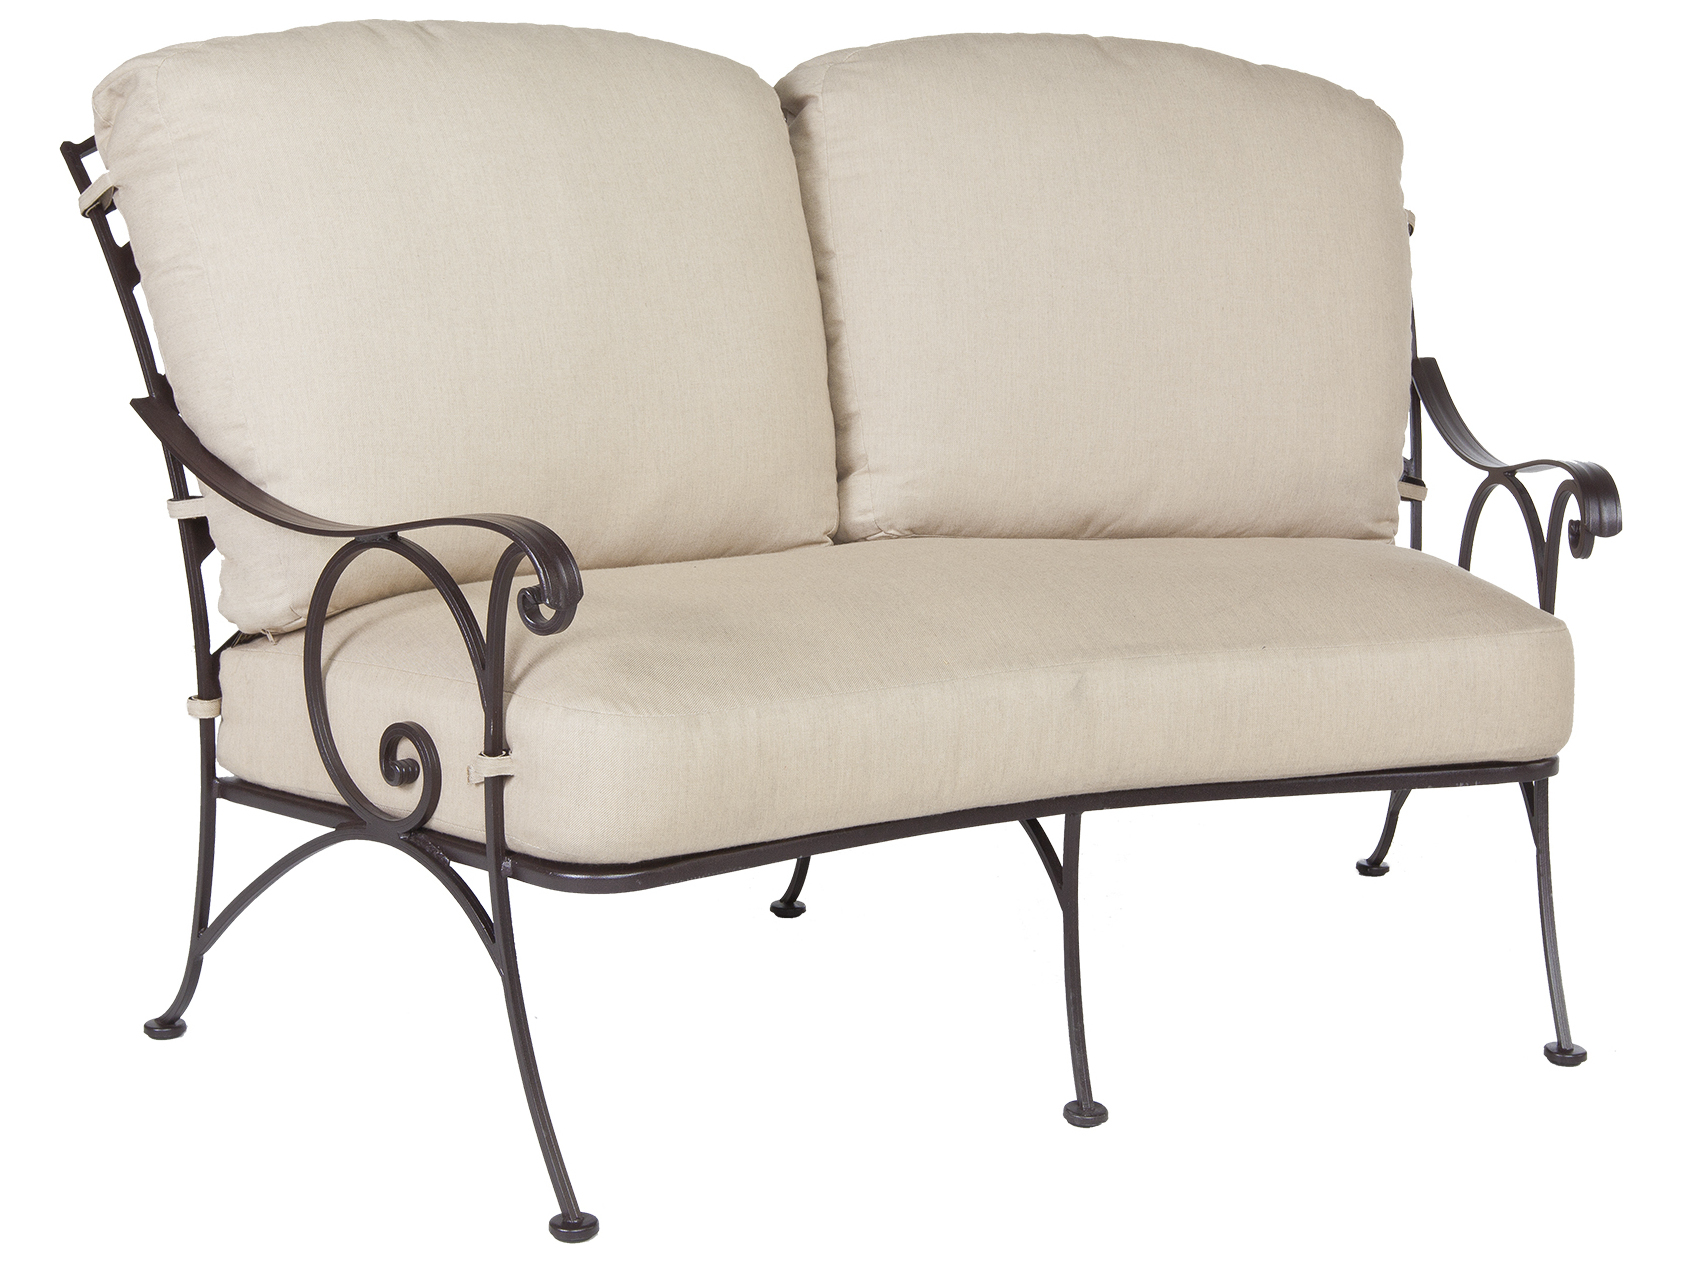 Ow Lee Siena Wrought Iron Crescent Loveseat 8262 2s